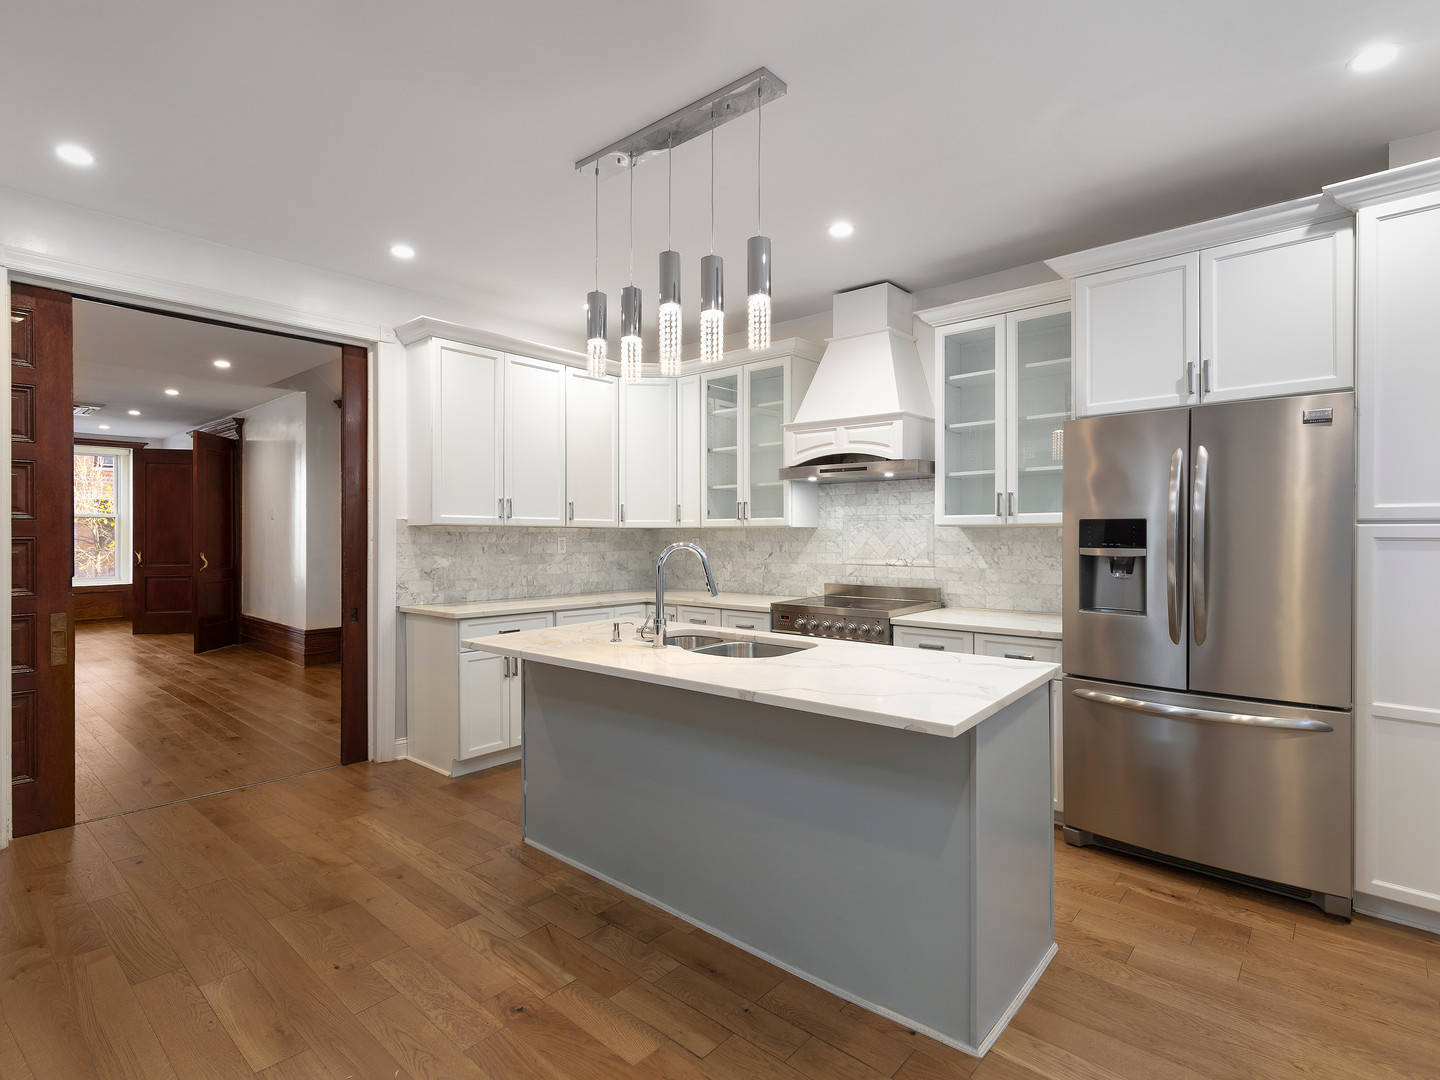 Real Estate Photo of a brownstone kitchen in New York City.